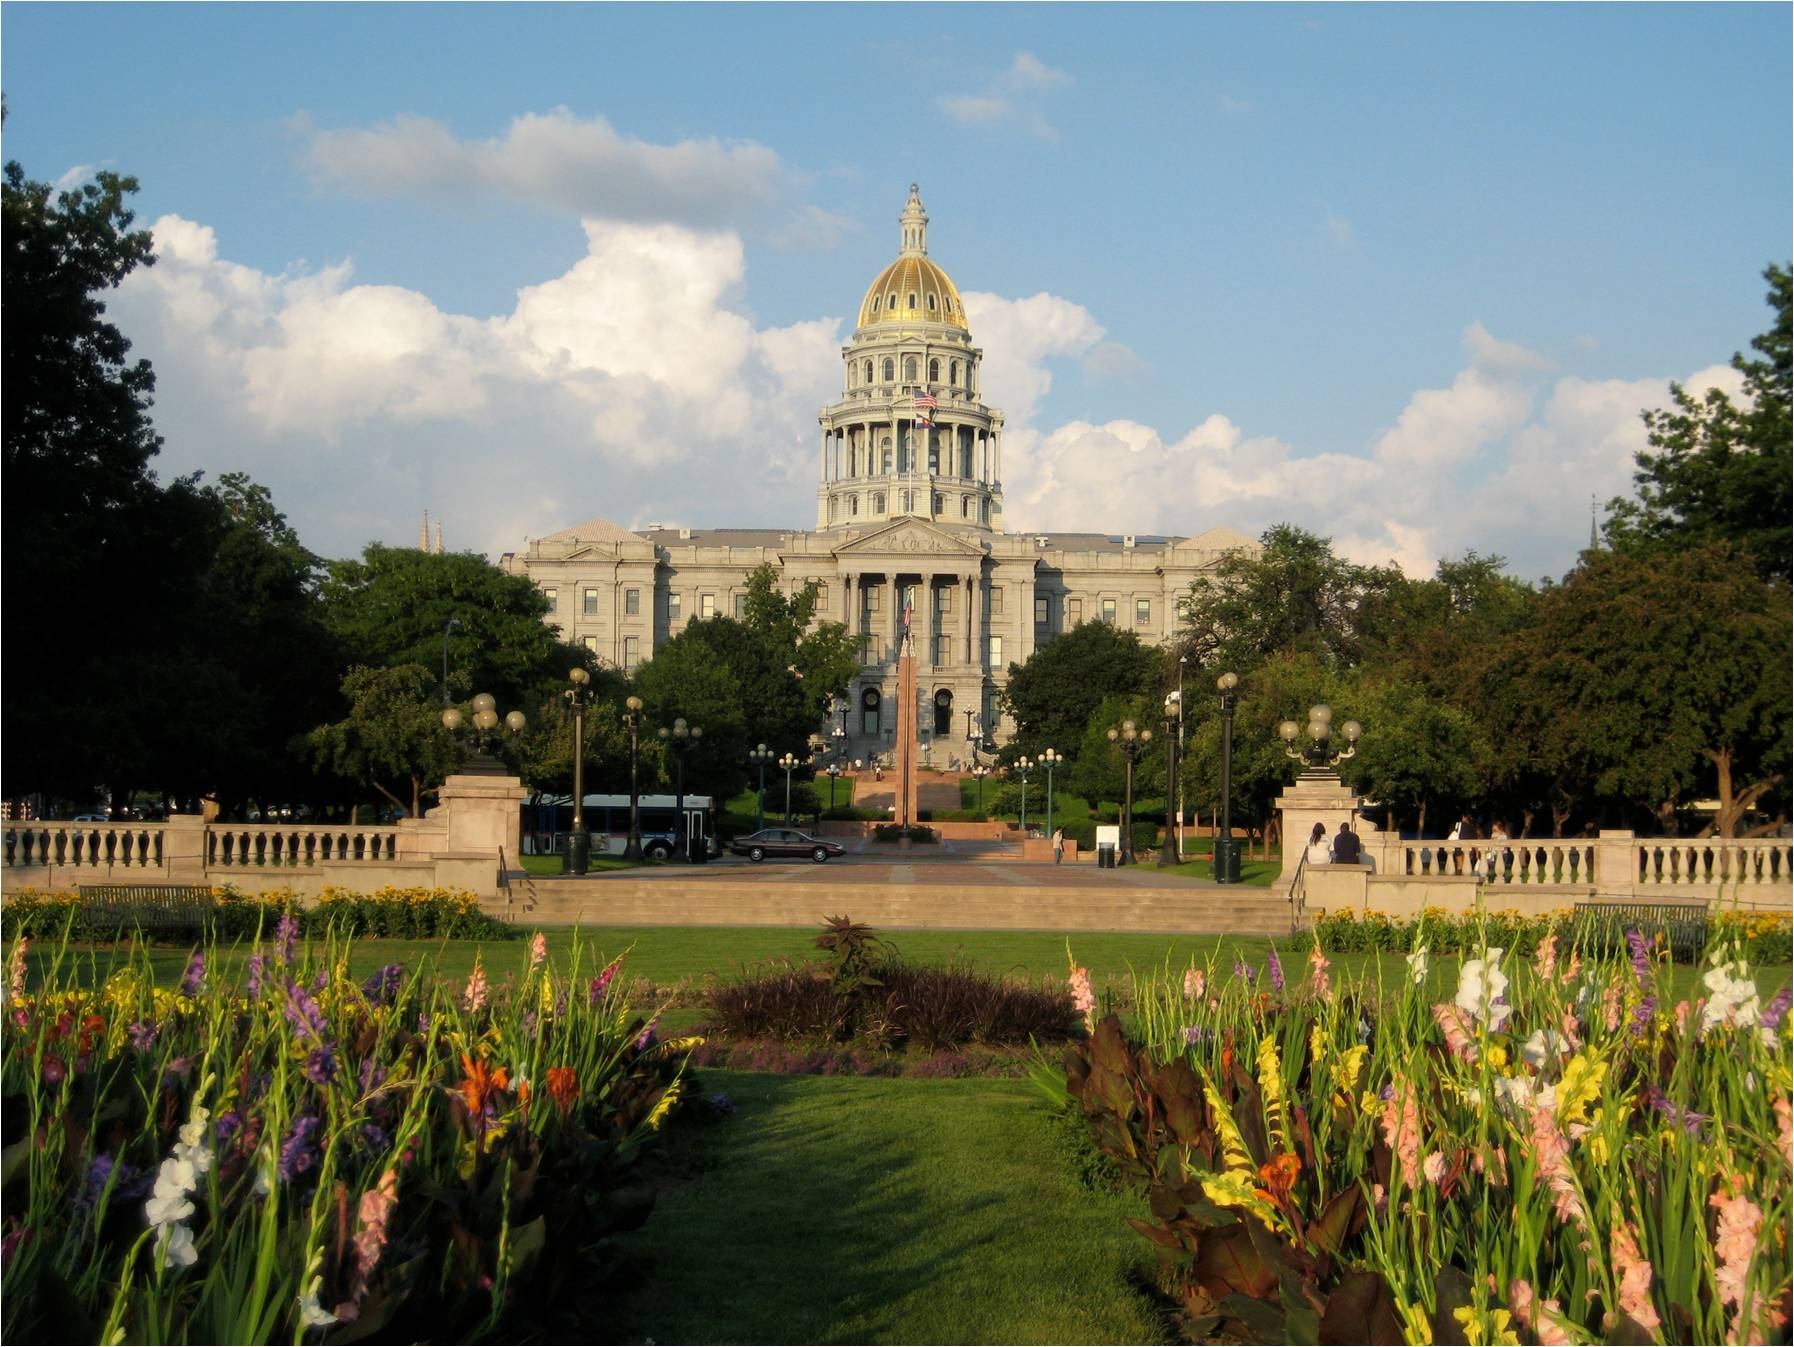 The Colorado State Capitol Building is located in downtown Denver and is on the National Register of Historic Places.